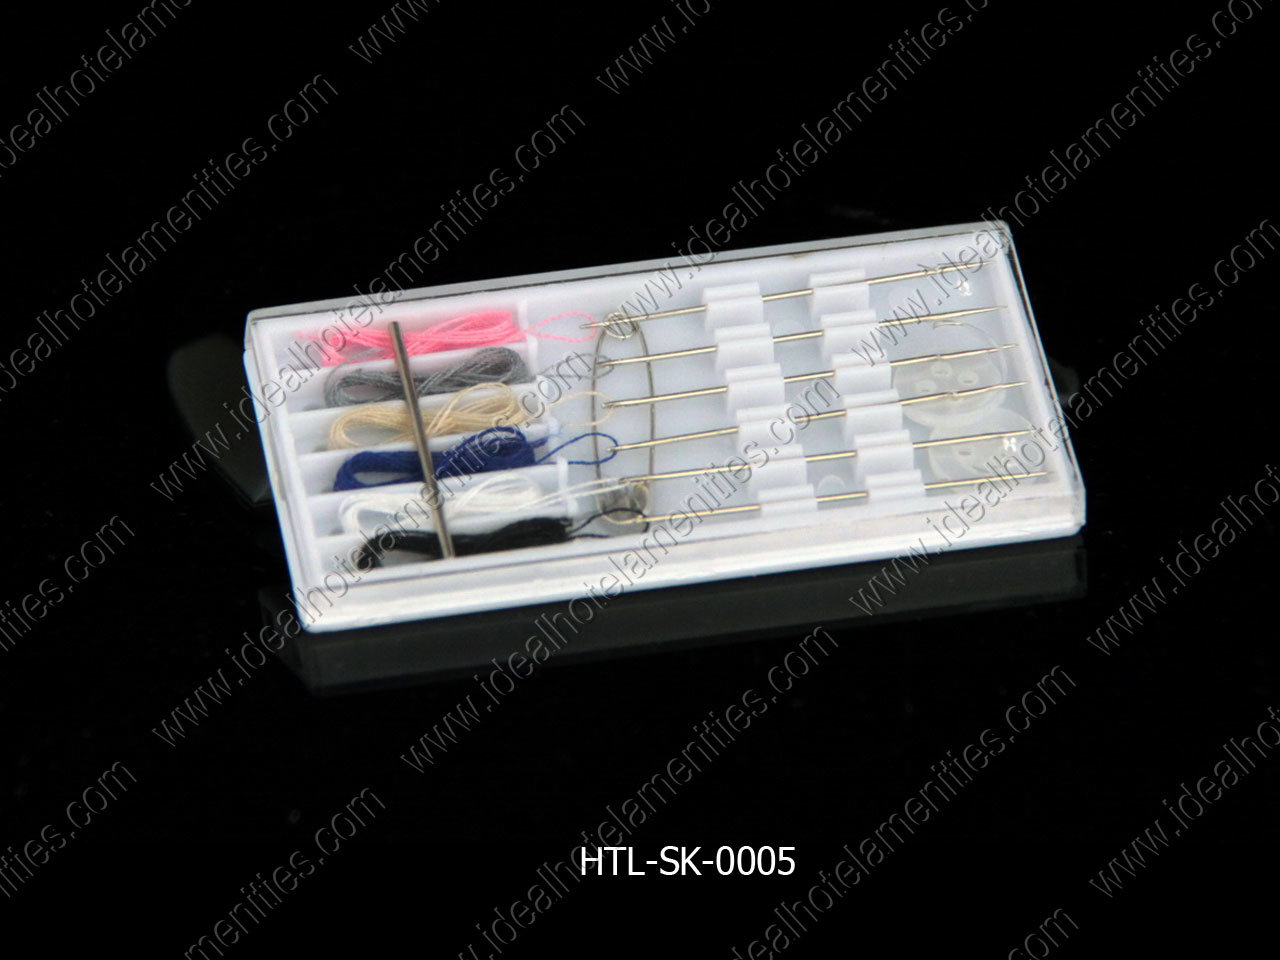 Hotel Sewing Kit Htl Sk 0005 China Travel Sewing Kit Mini Sewing Kit